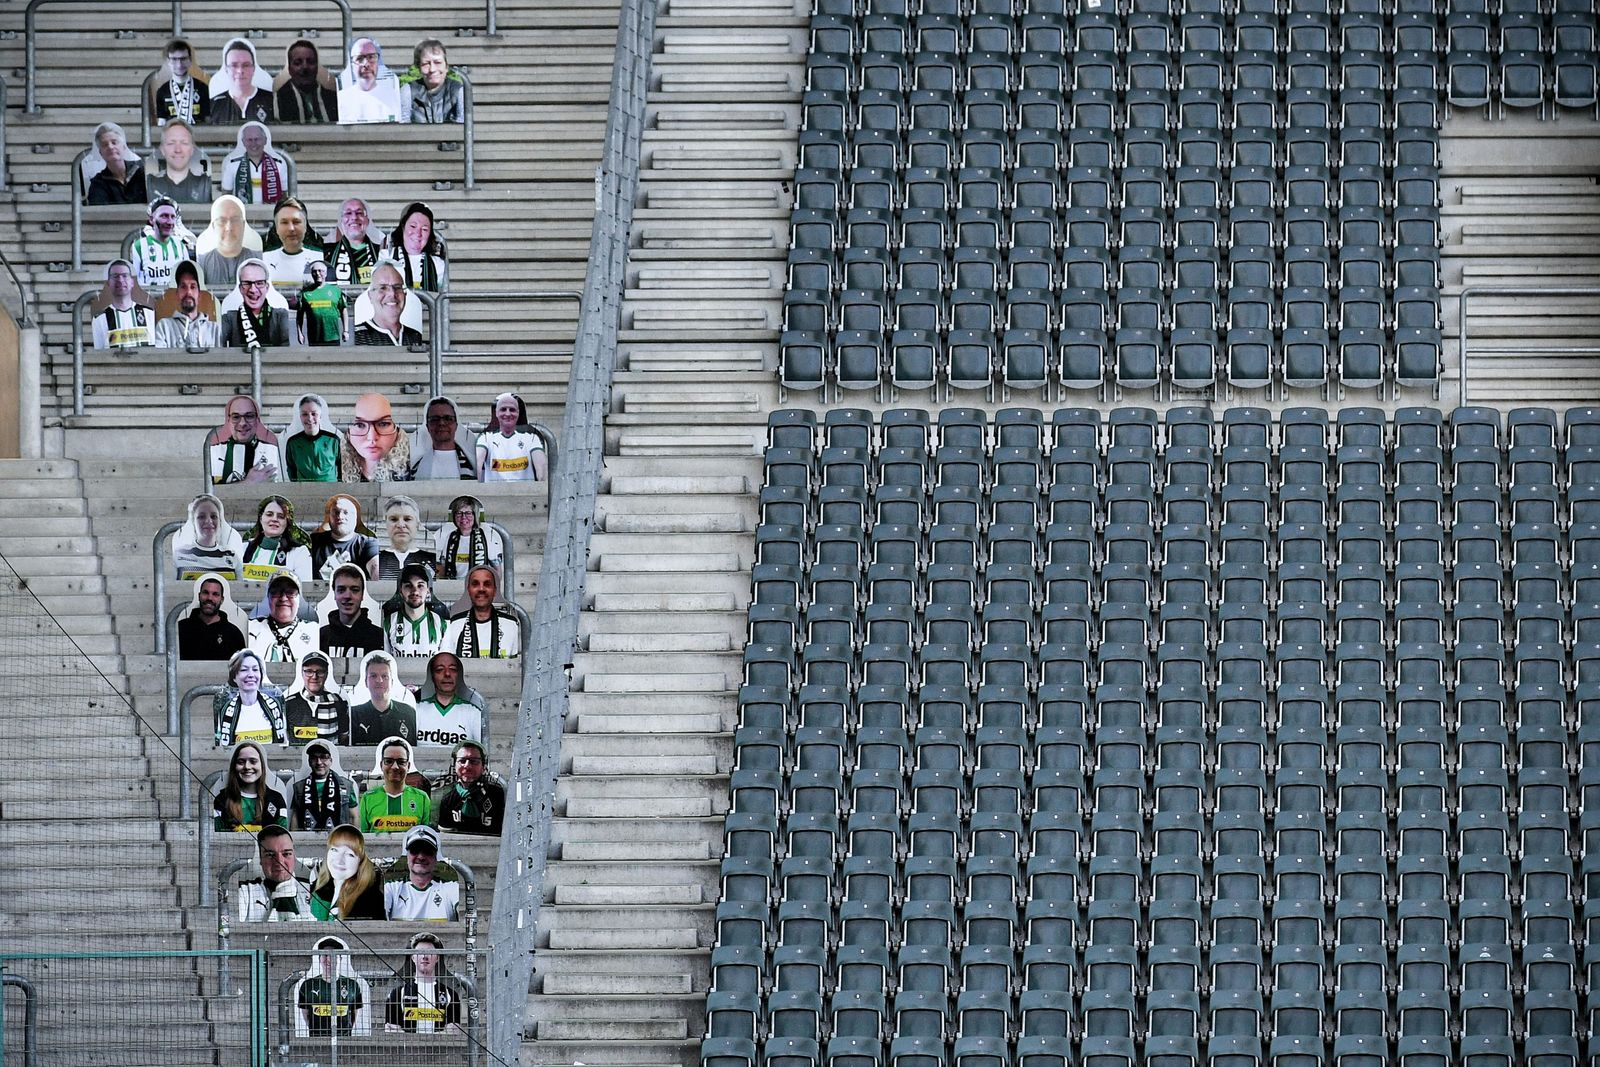 Cardboard cutouts replace supporters at empty soccer stadium in Germany, Moenchengladbach - 16 Apr 2020